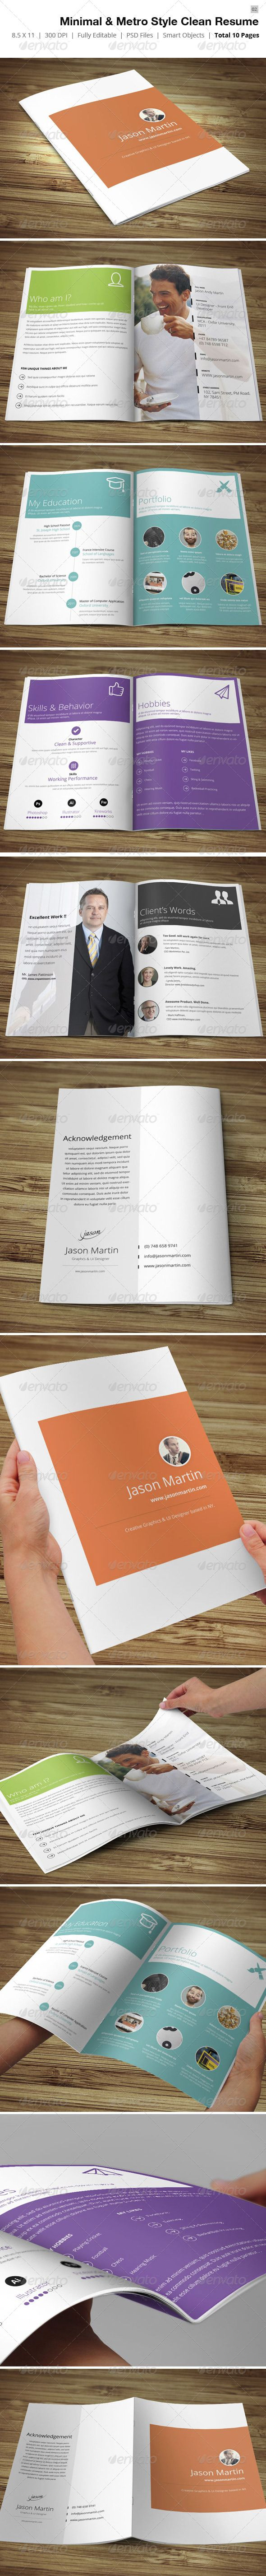 Minimal & Metro Style Resume  #freelancer #information #inspire • Click here to download ! http://graphicriver.net/item/minimal-metro-style-resume-/4311194?s_rank=129&ref=pxcr